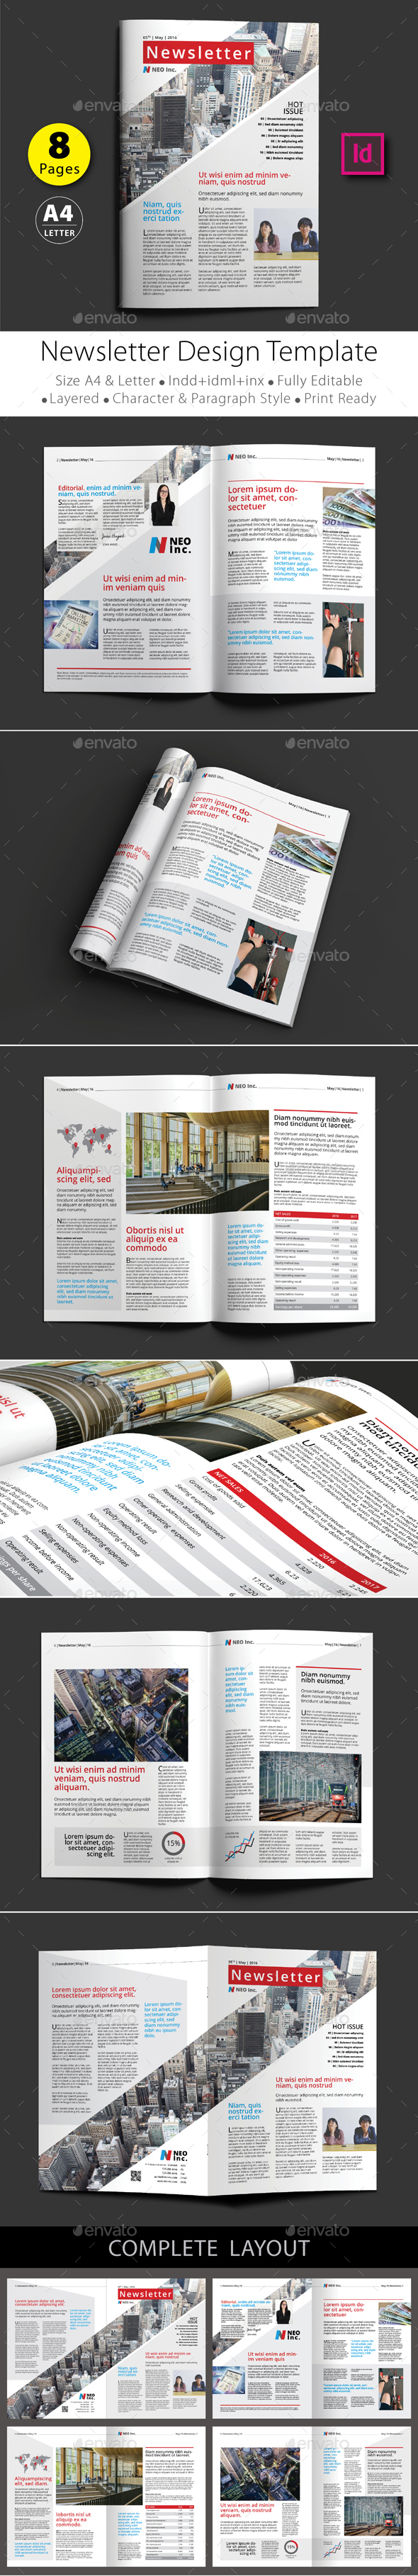 8 pages newsletter design template v 1 newsletters print templates